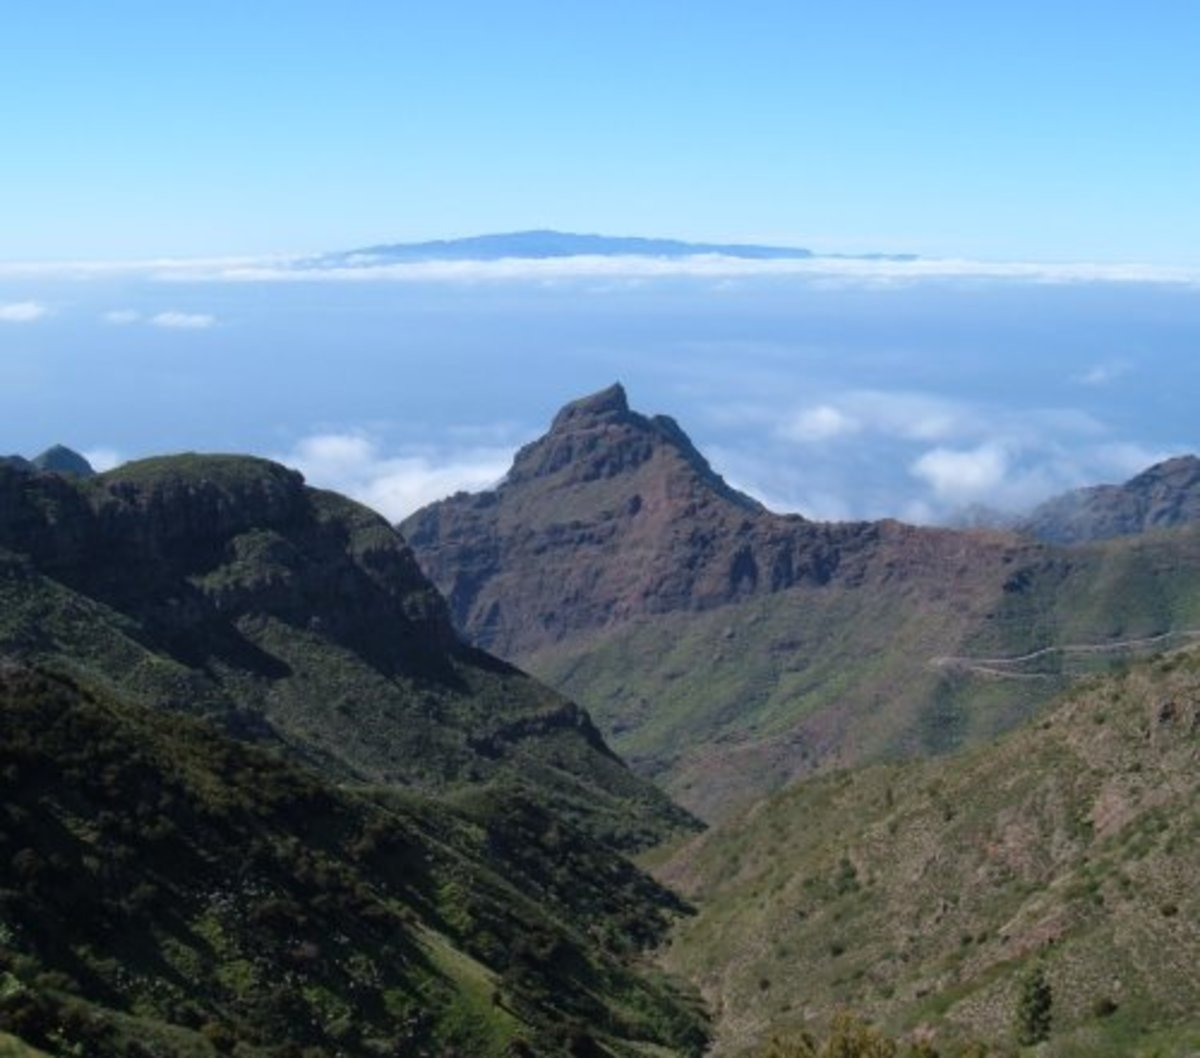 Mountains and valleys near Masca. La Gomera in the background. Photo by Steve Andrews